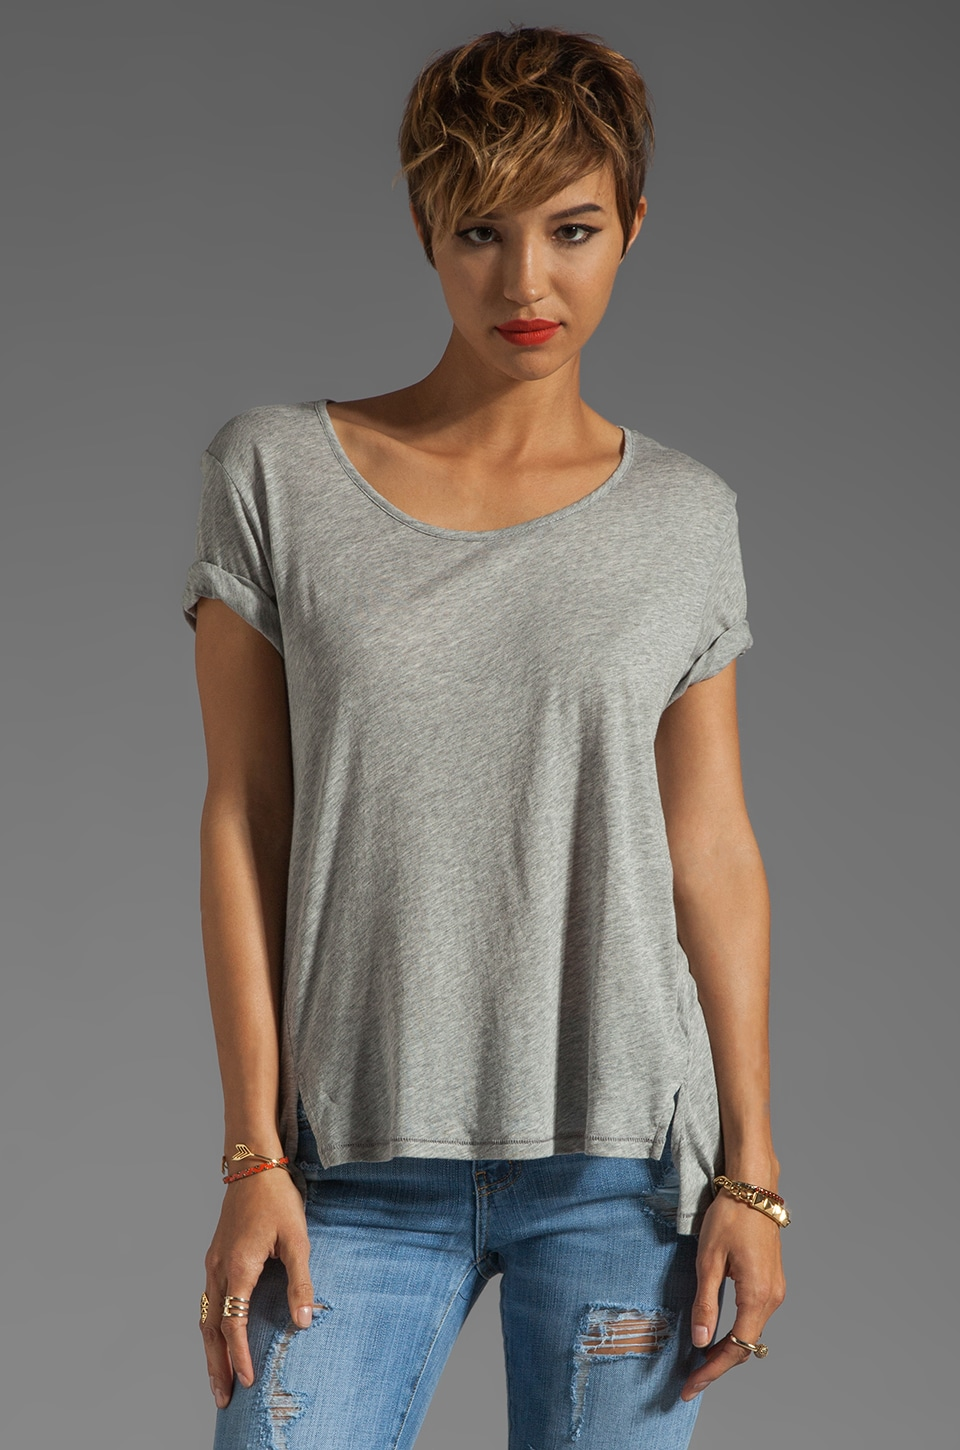 Elizabeth and James Kal Tee in Heather Grey